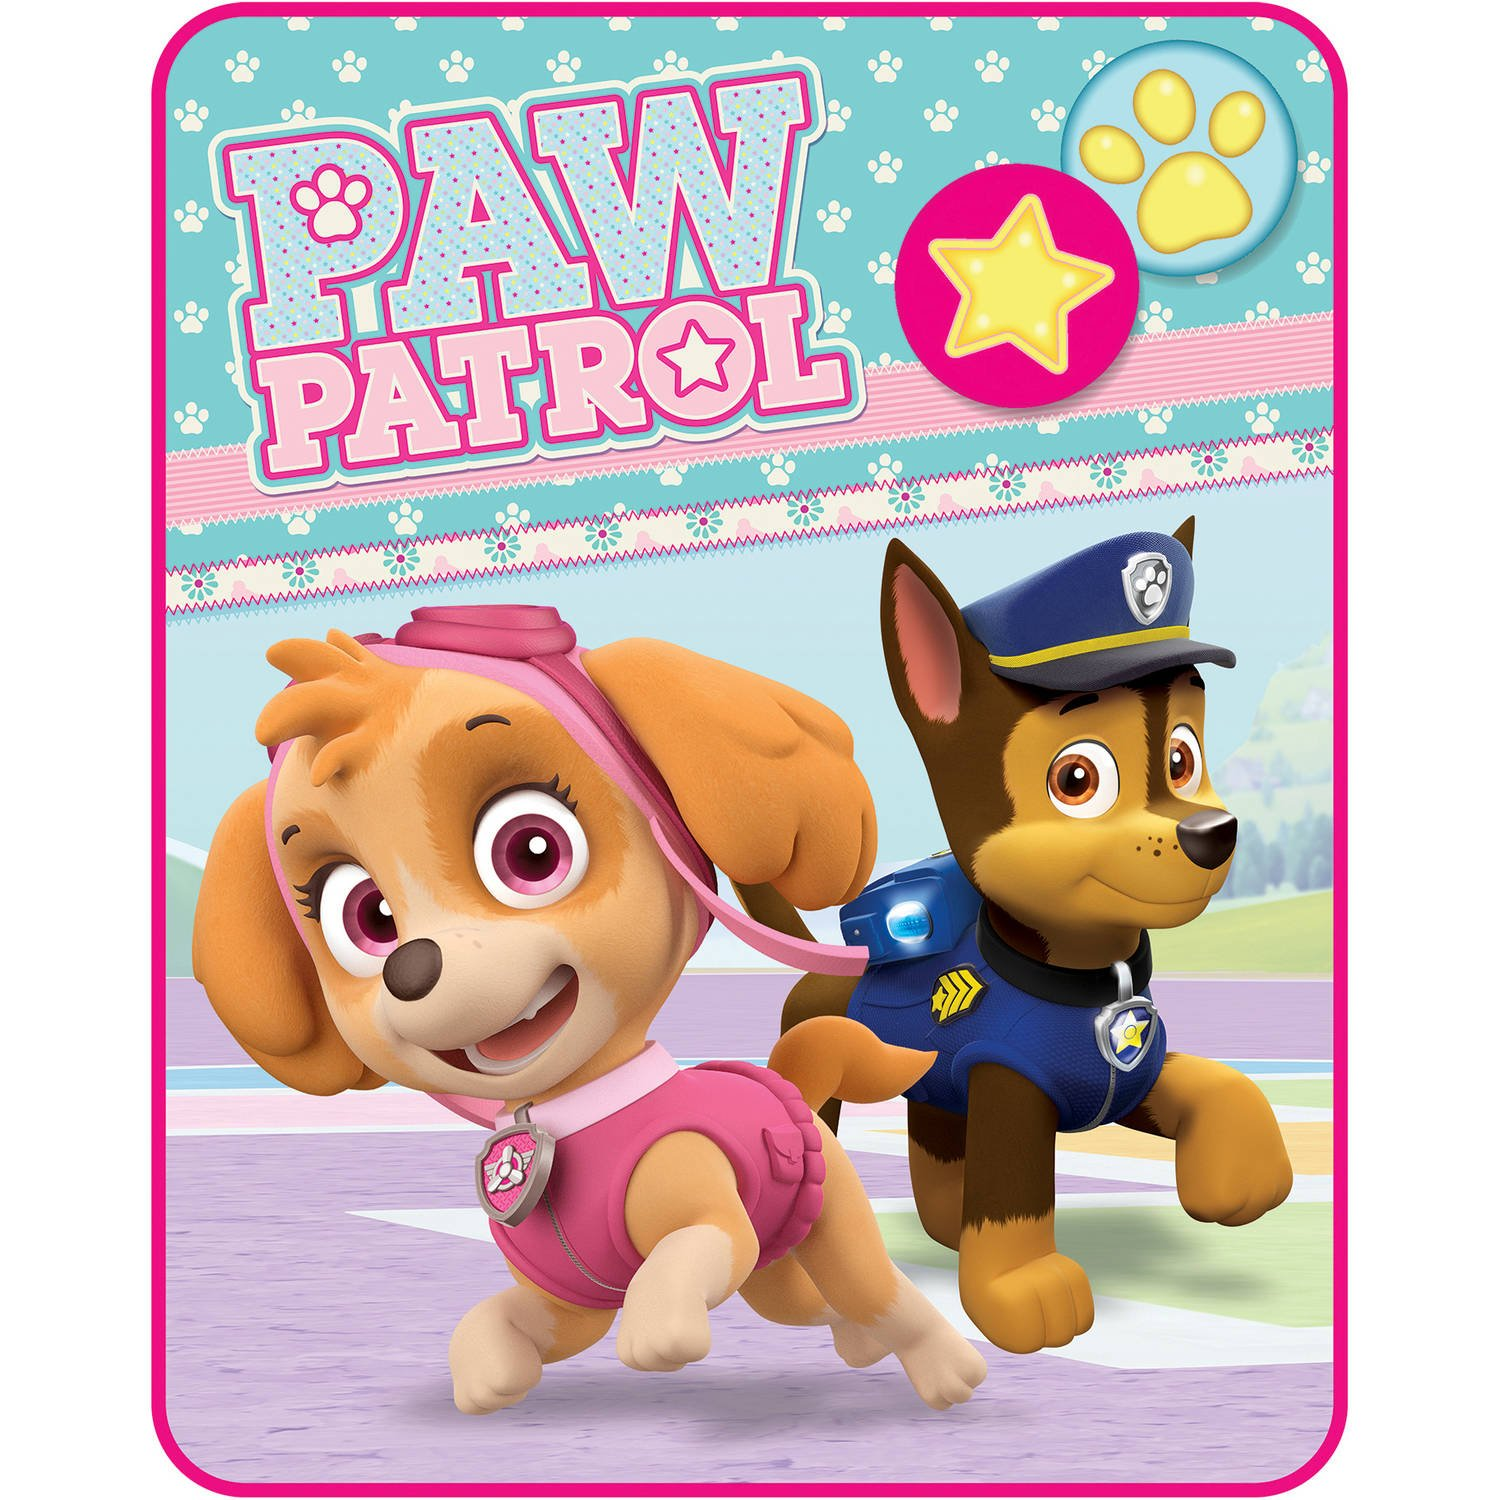 Chase Down A Paw Patrol Blanket And You'll Be On A Roll ...